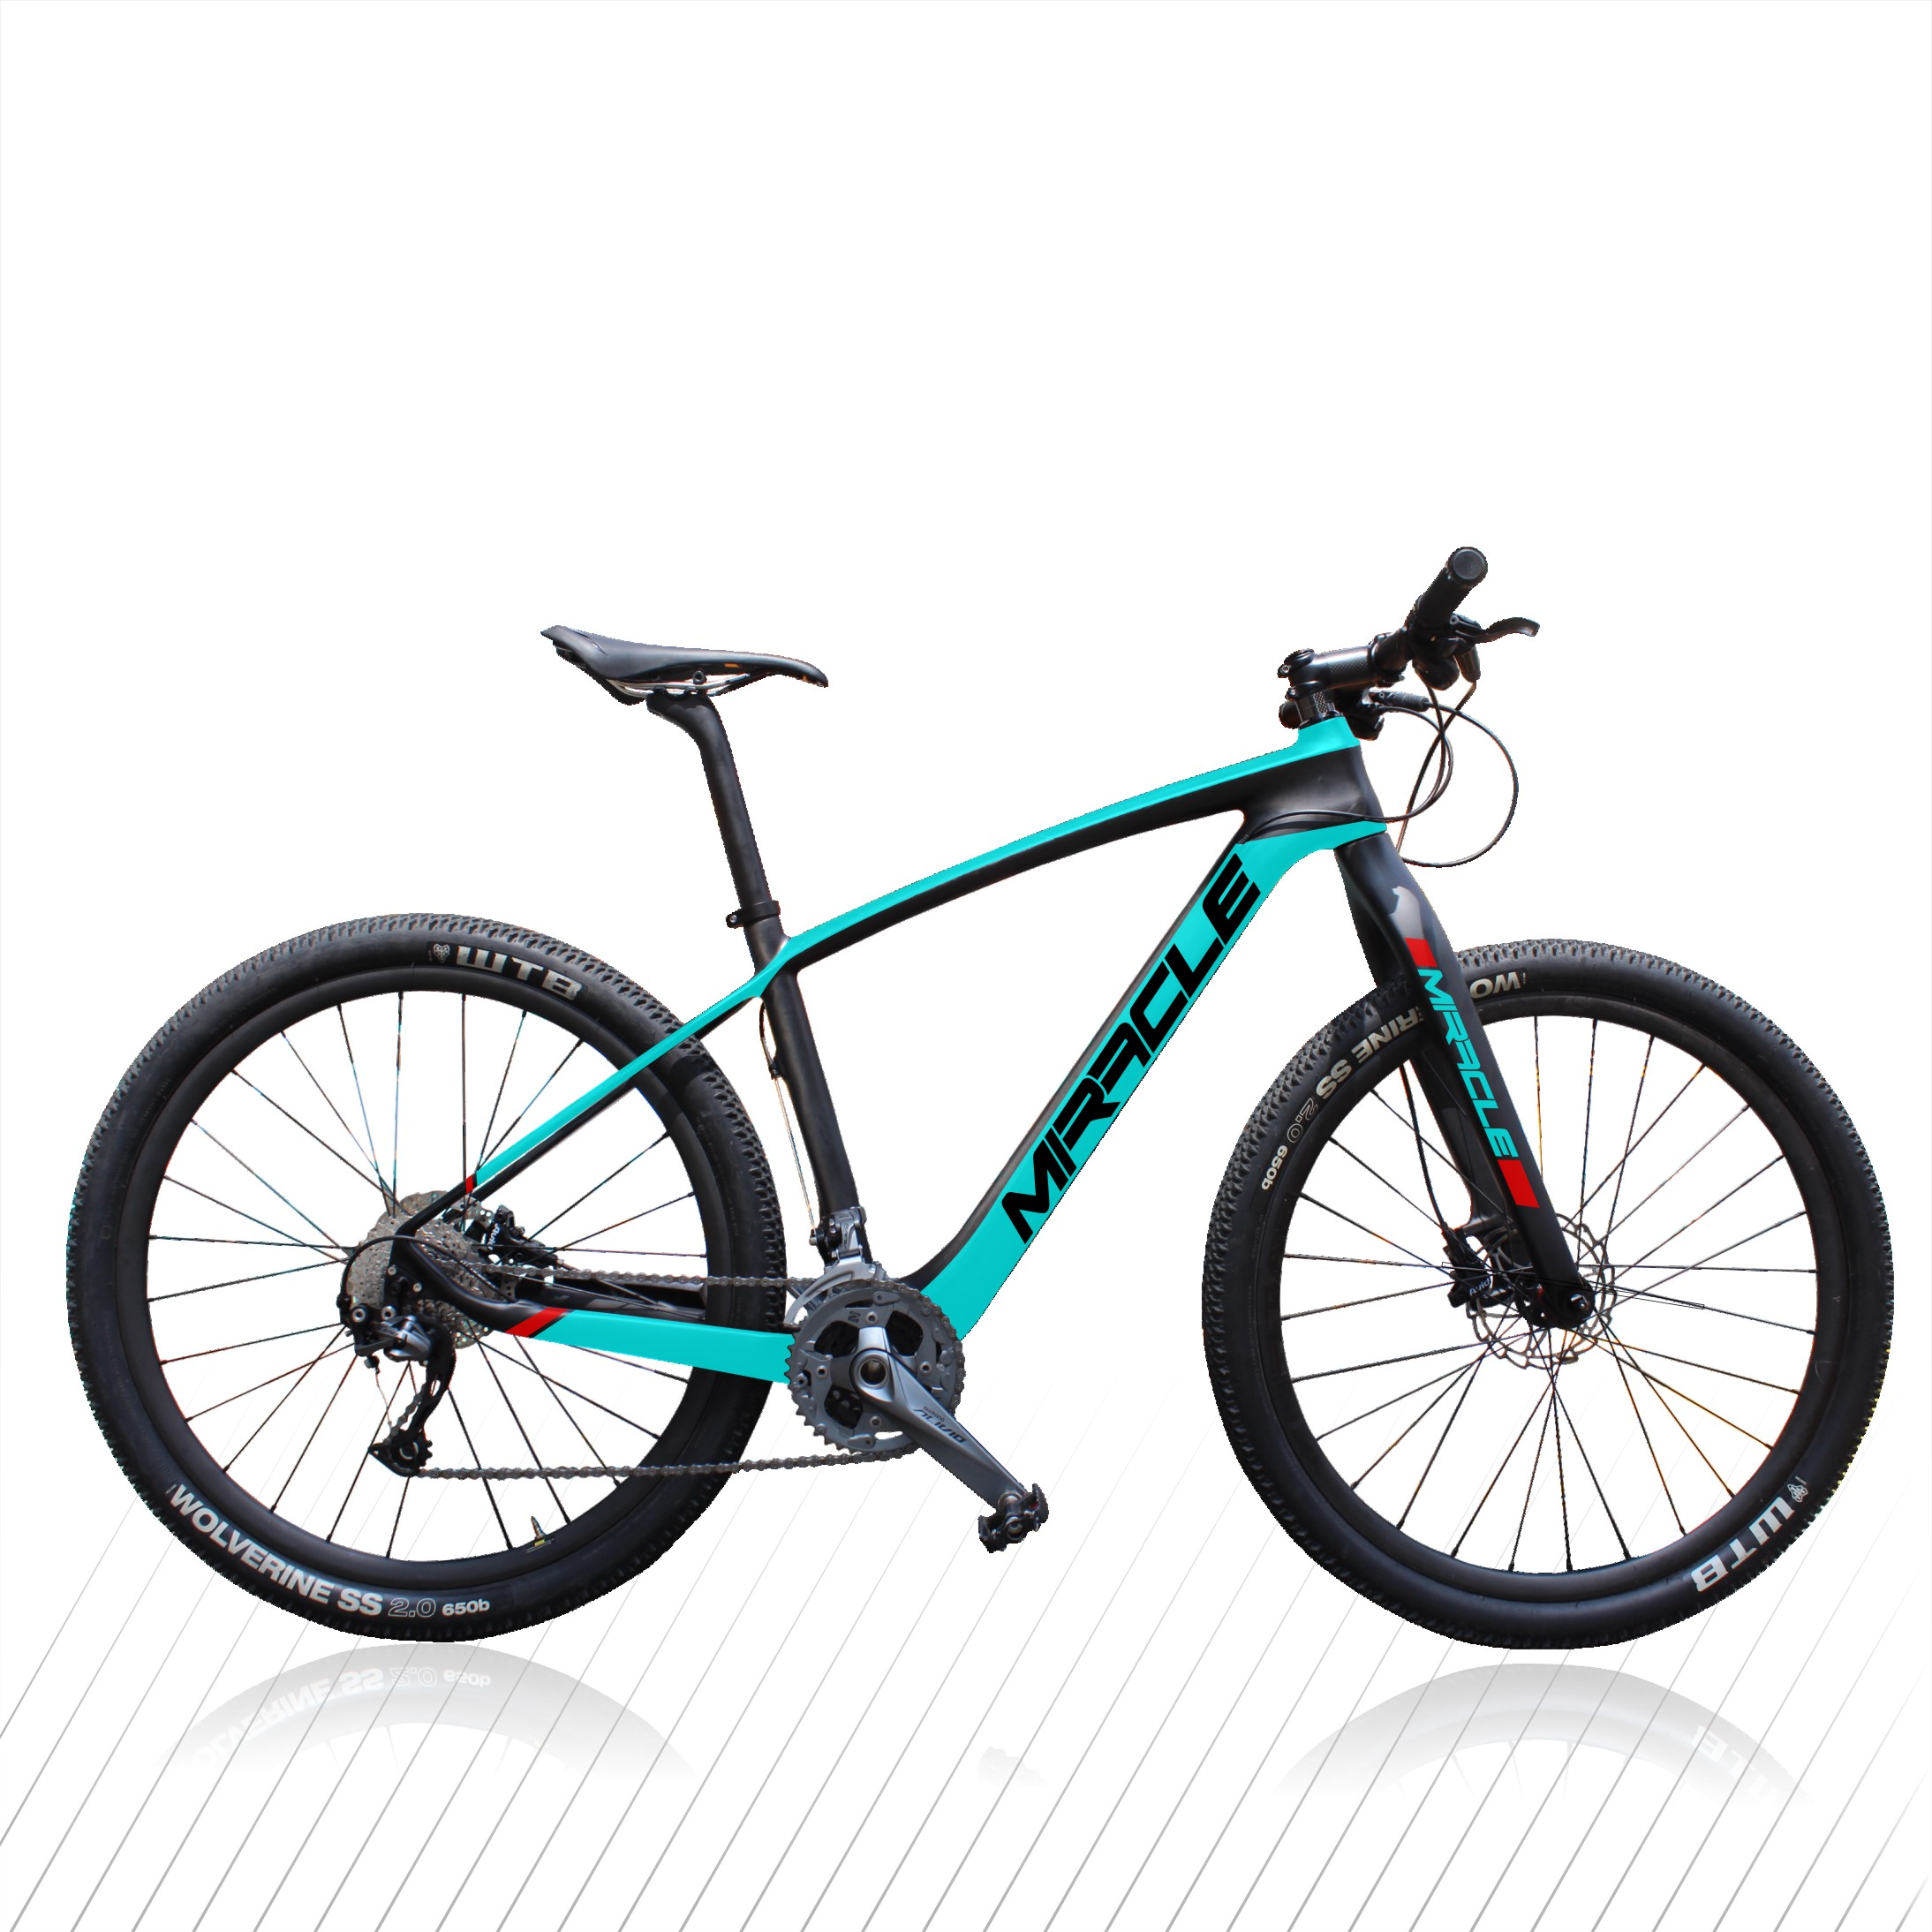 Cheapest  Price Carbon Complete Bike 29er MTB ,high Quality T700 Full Carbon Bicycle Frame 29er Mountain Bike